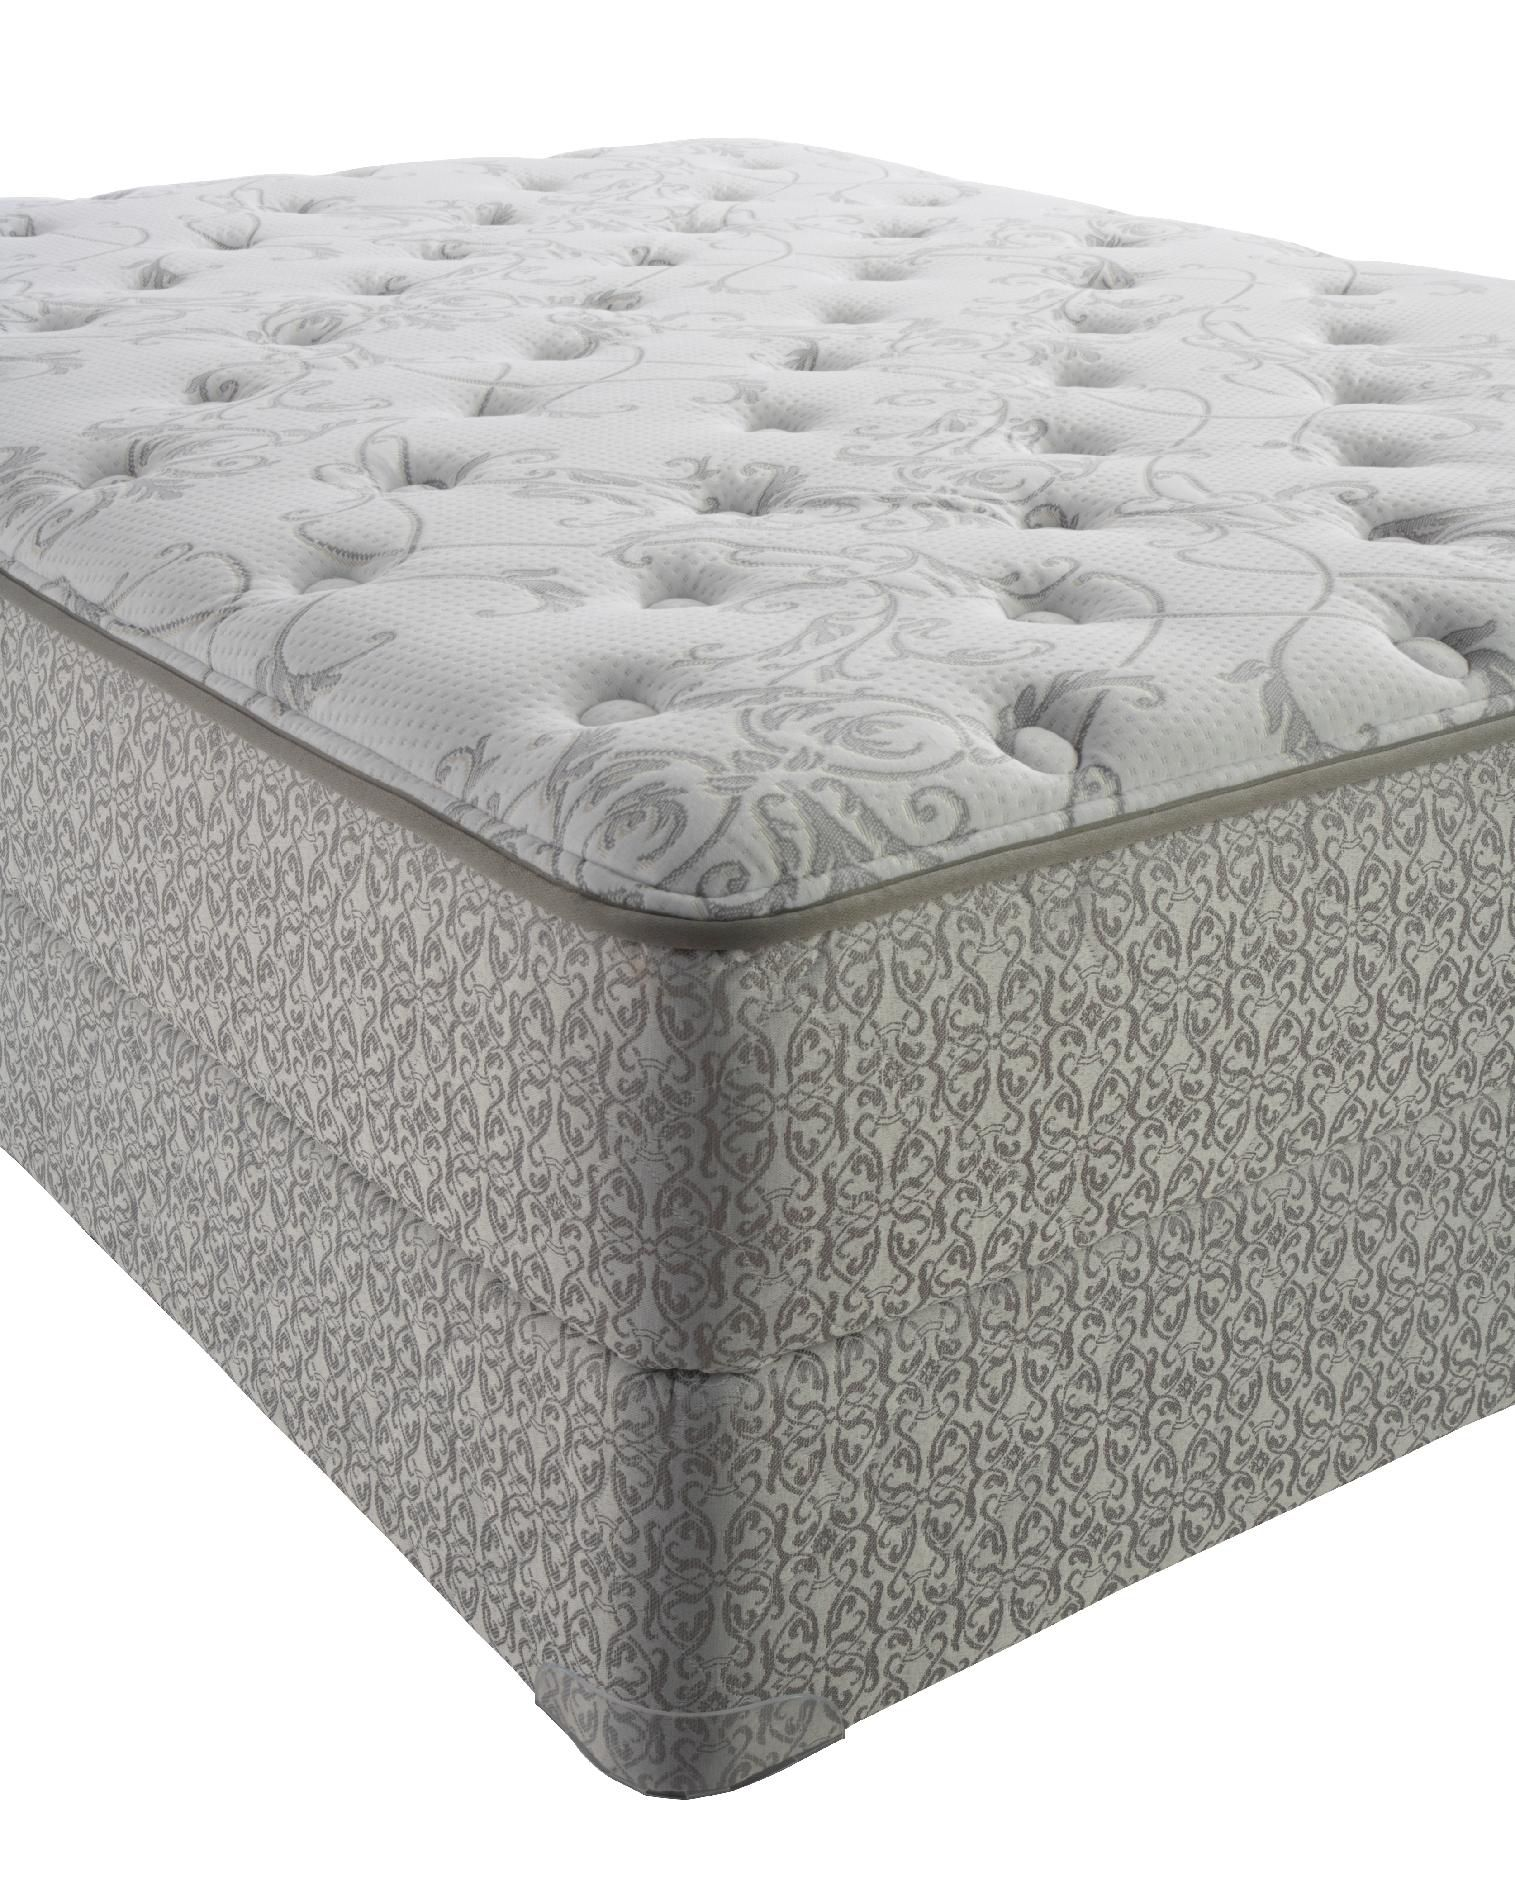 Latigo-Select-Plush-Queen-Mattress-Only